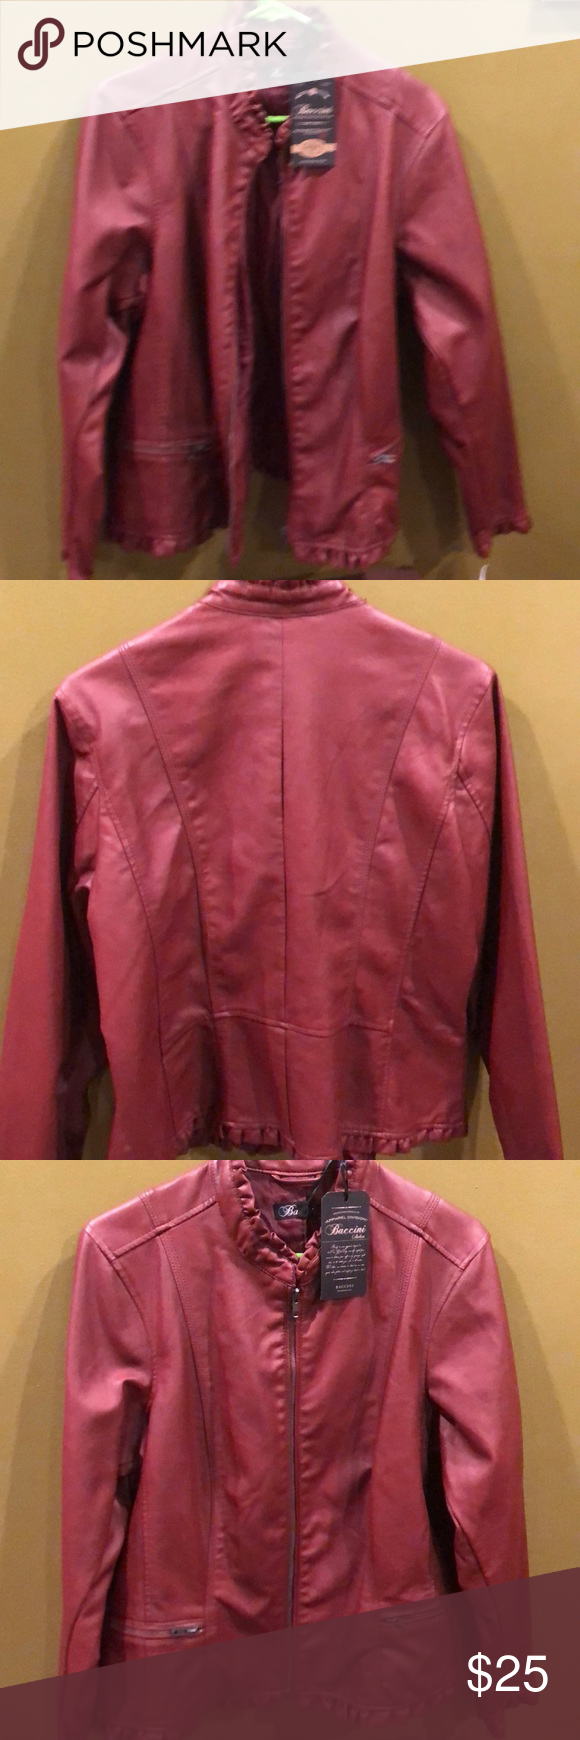 c572defd2 Baccini leather jacket Never worn tags still attached crimson red ...